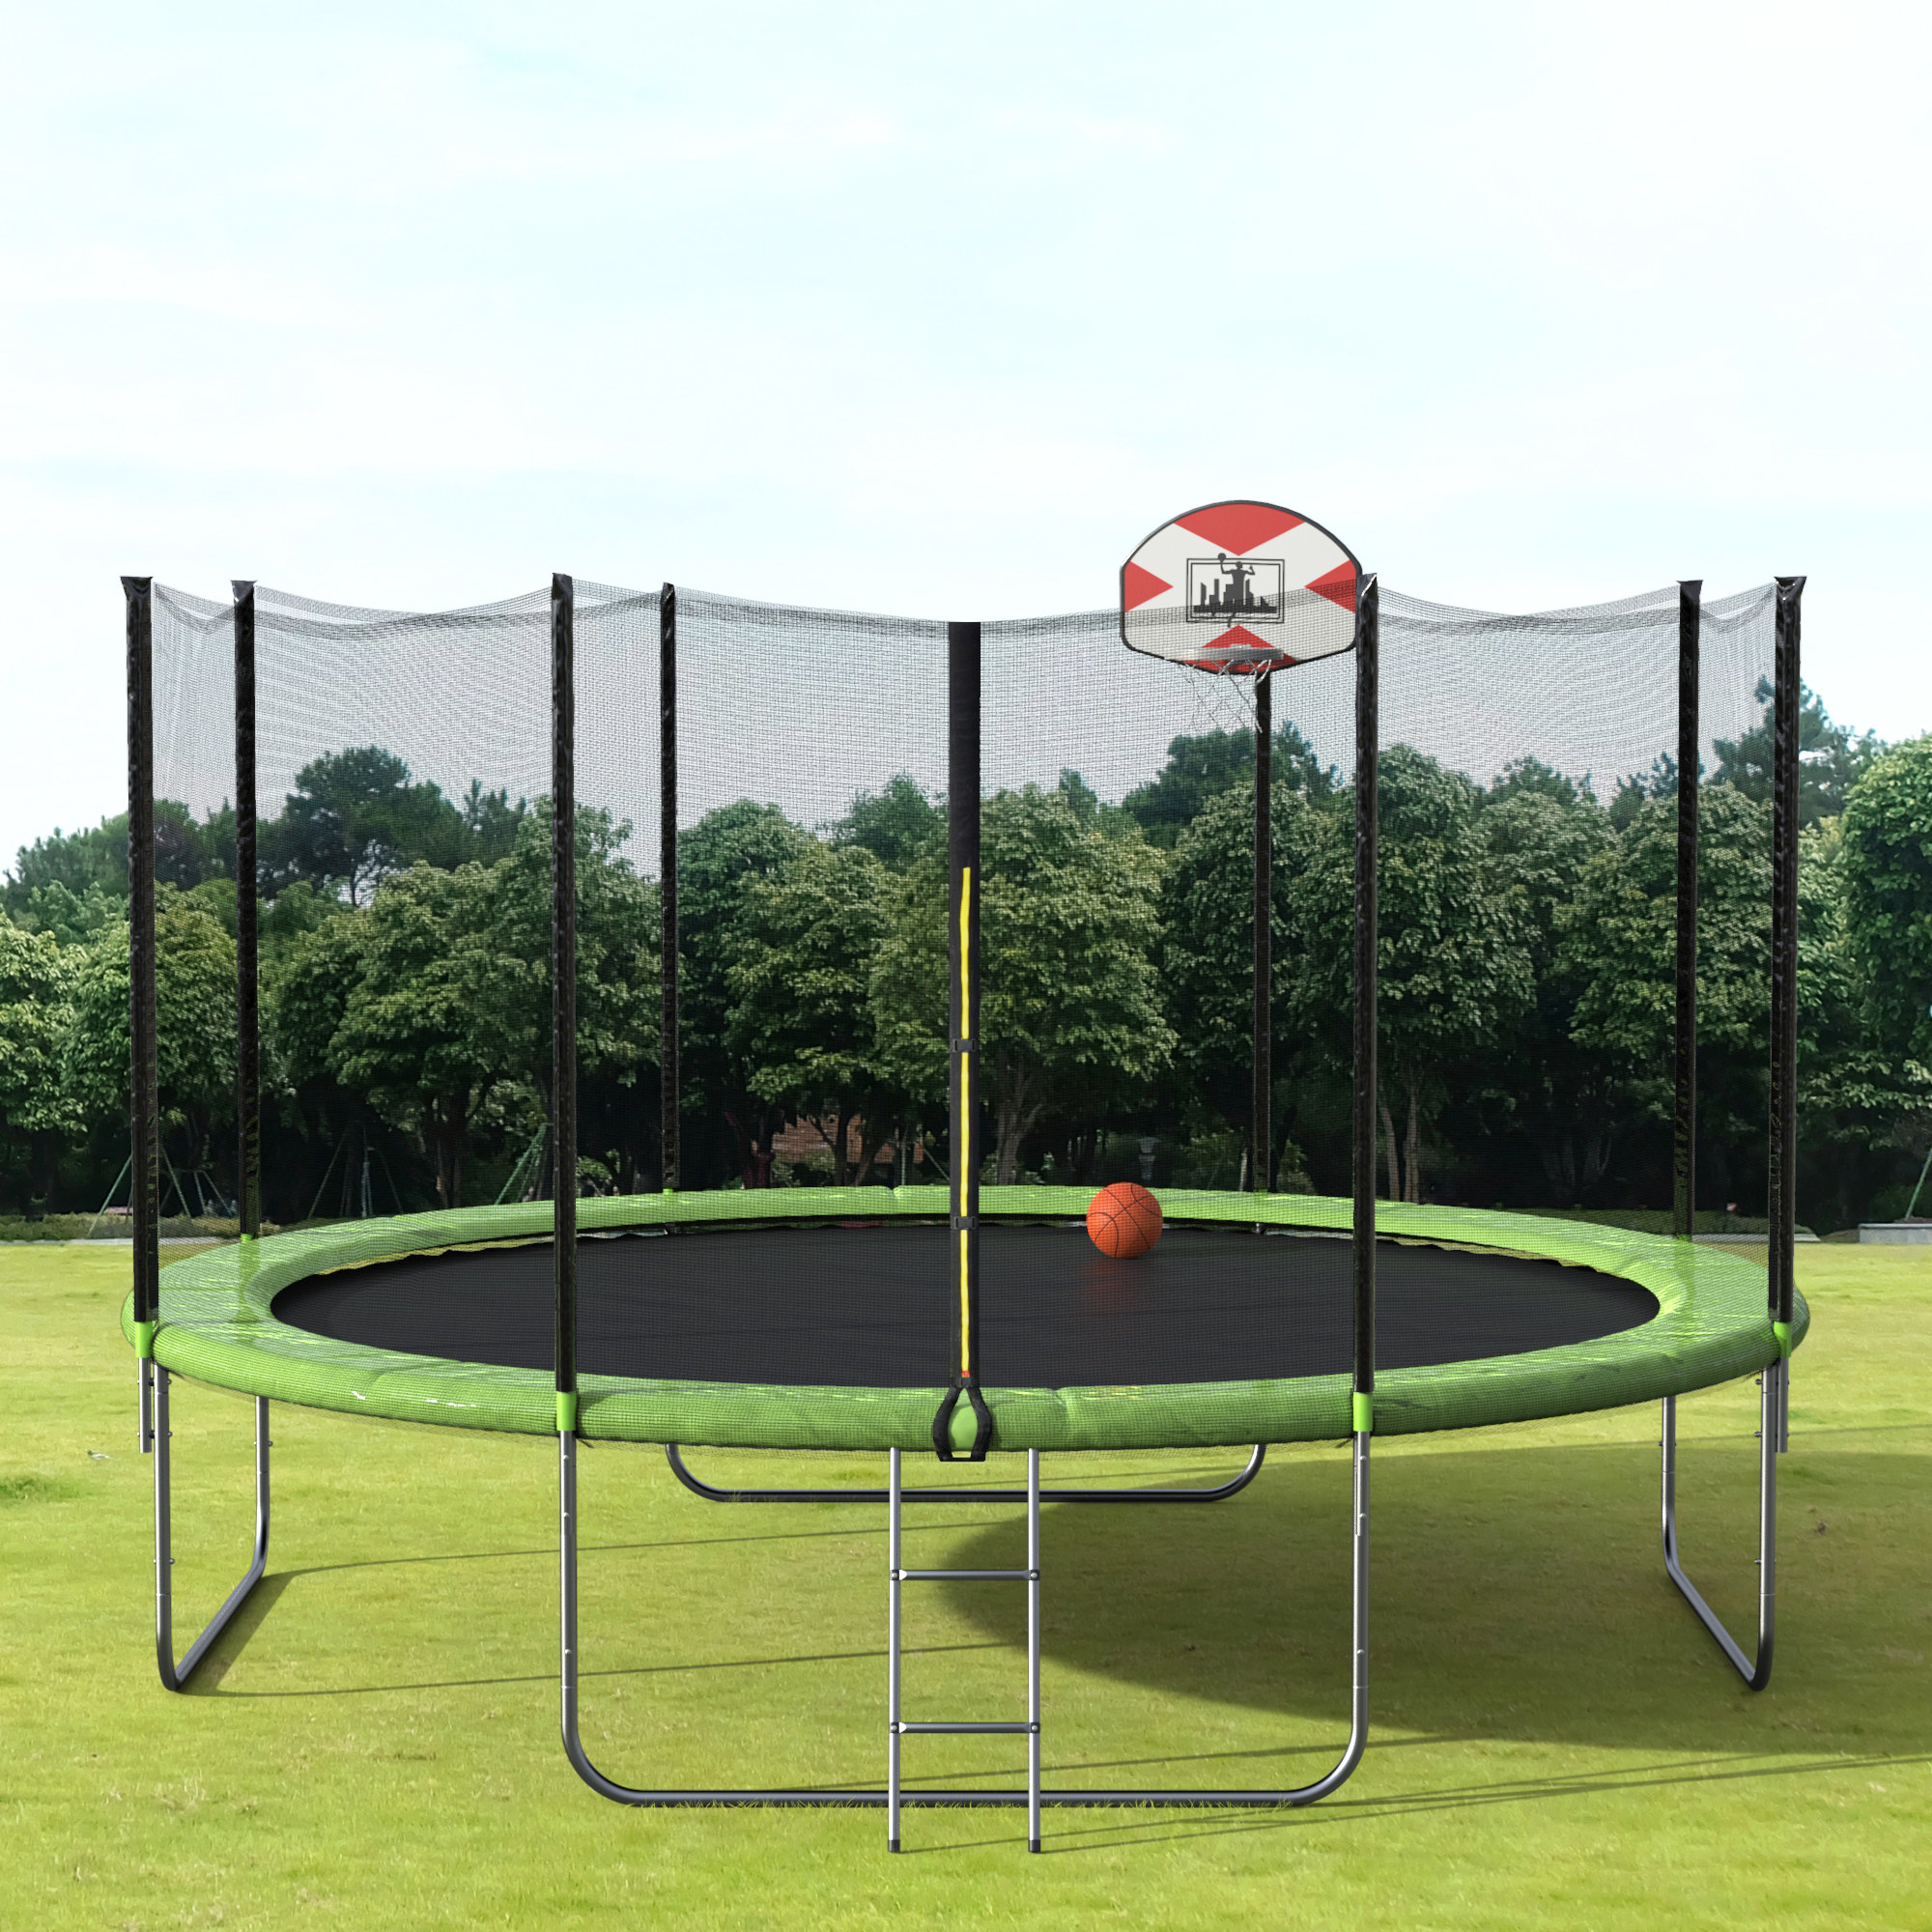 The circular trampoline, with small ladder to enter, four legs, and 10 poles holding up net